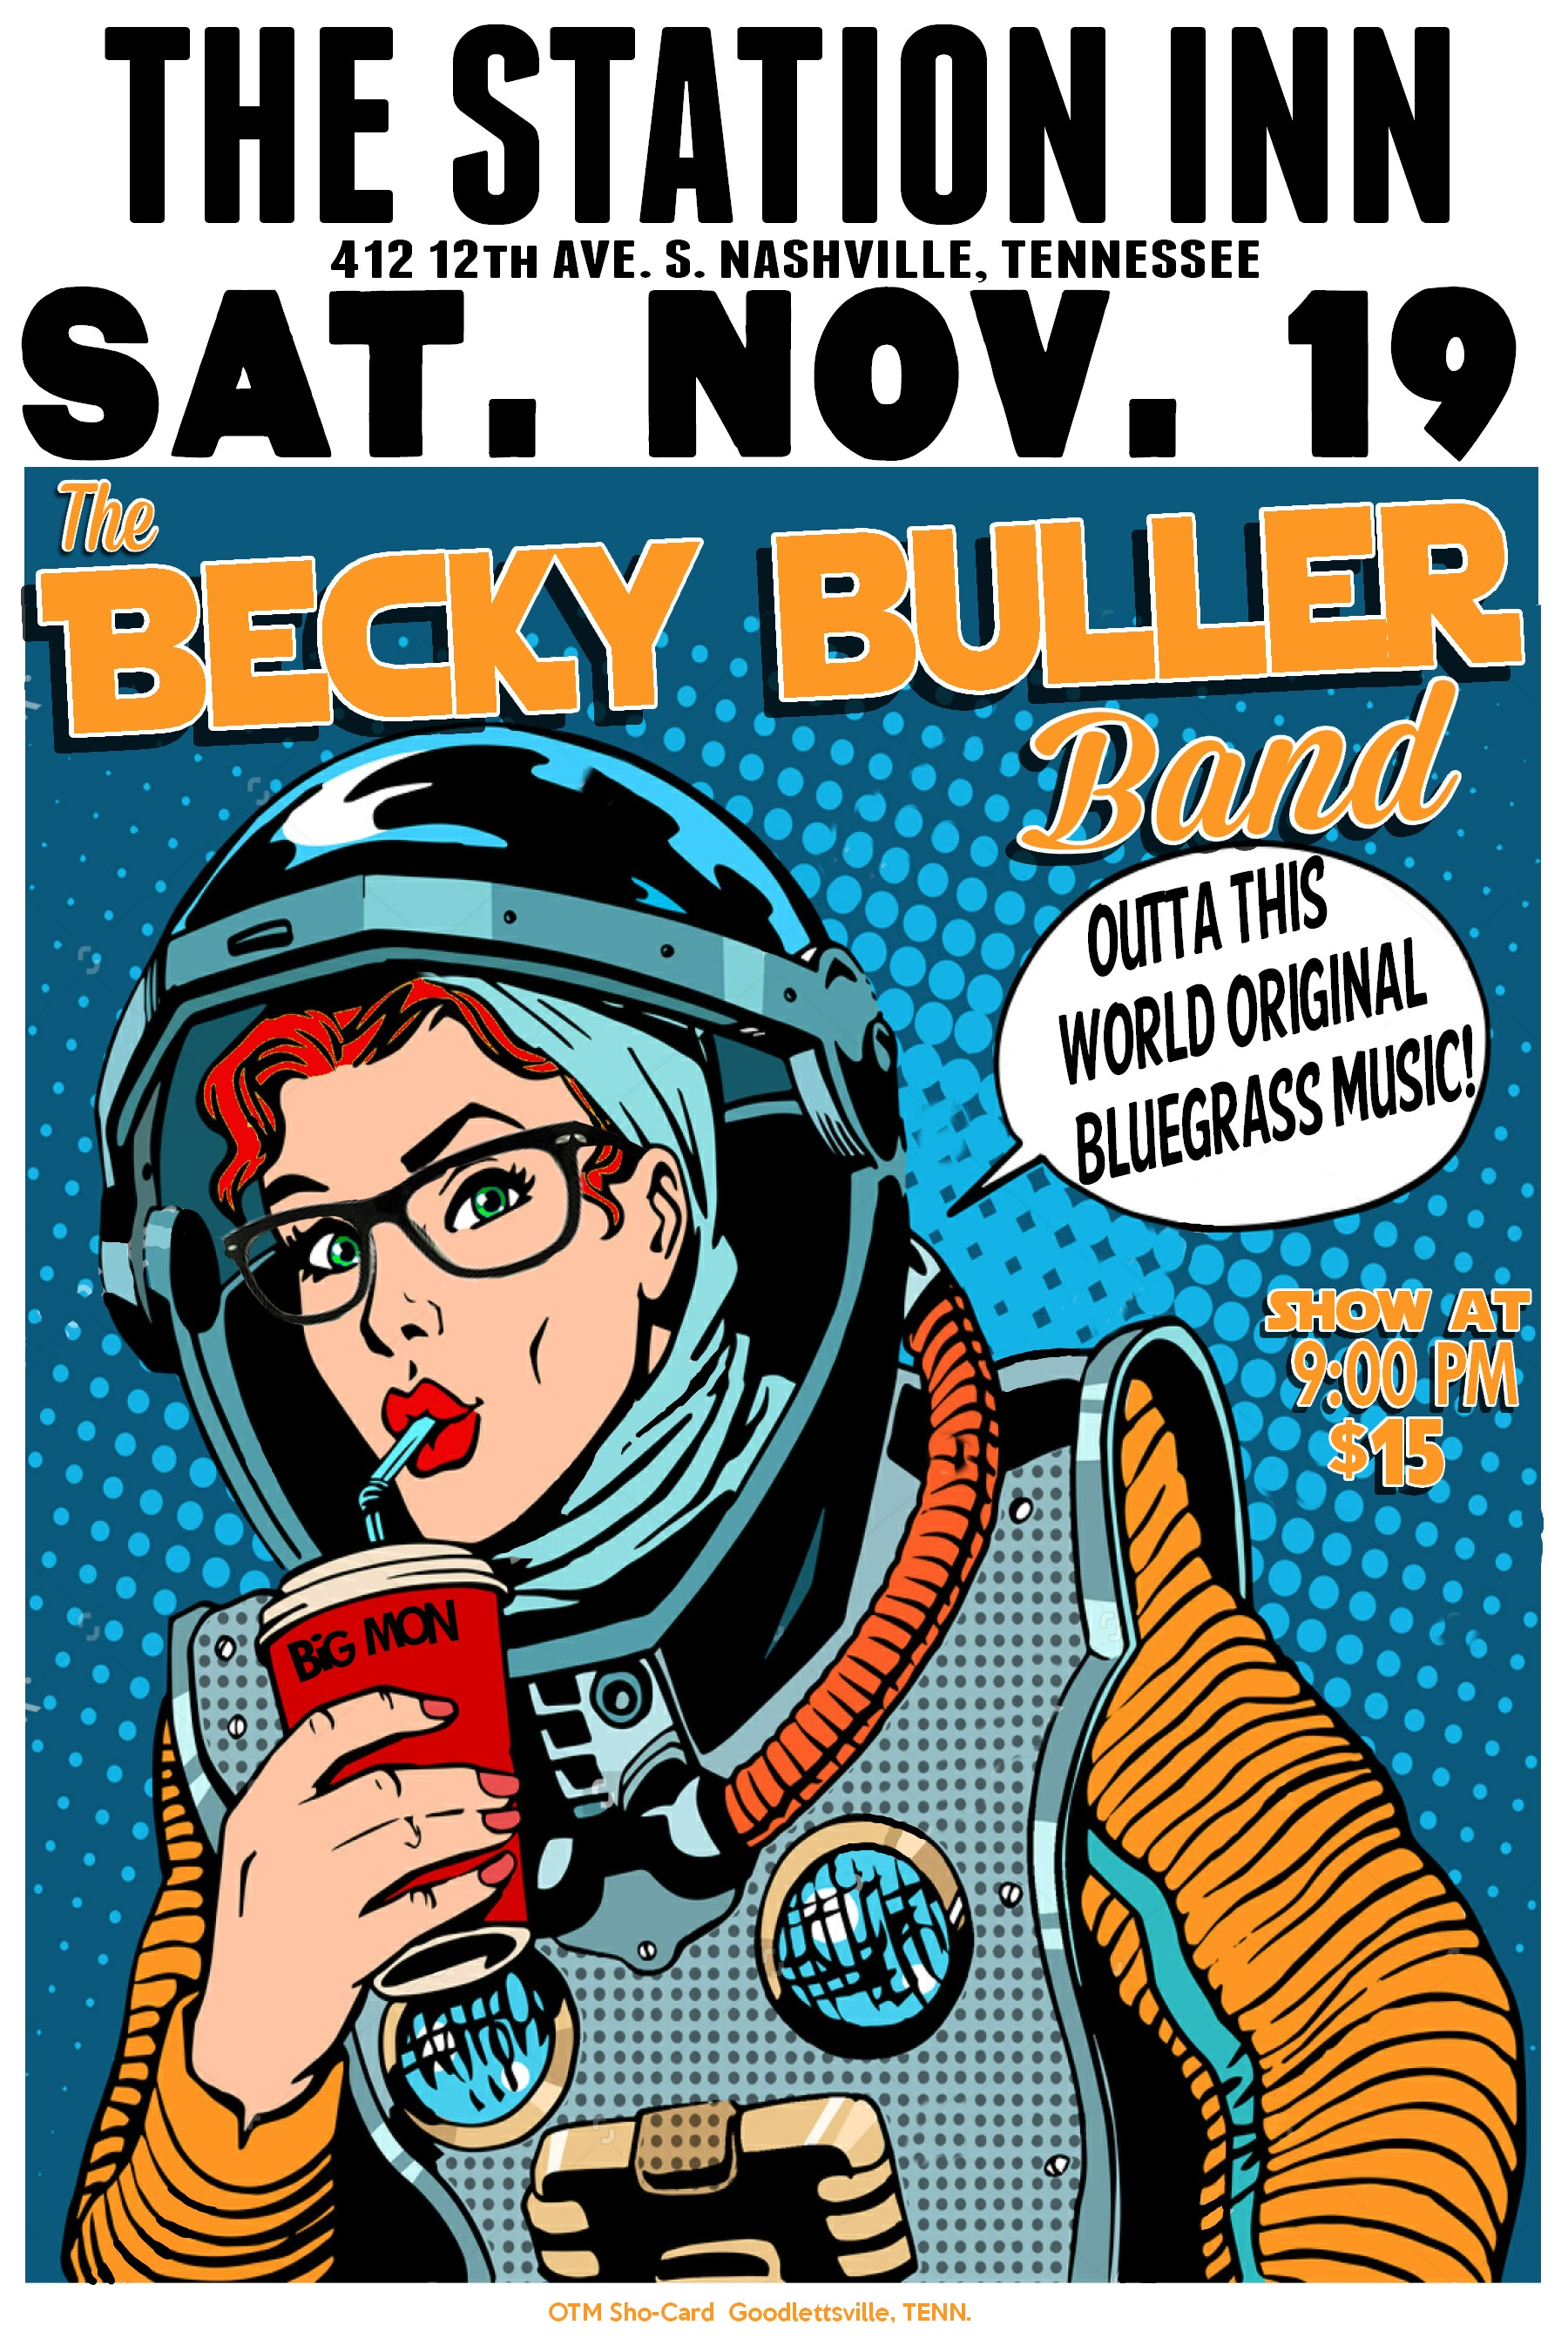 Limited Edition Signed Becky Buller Band Station Inn Poster